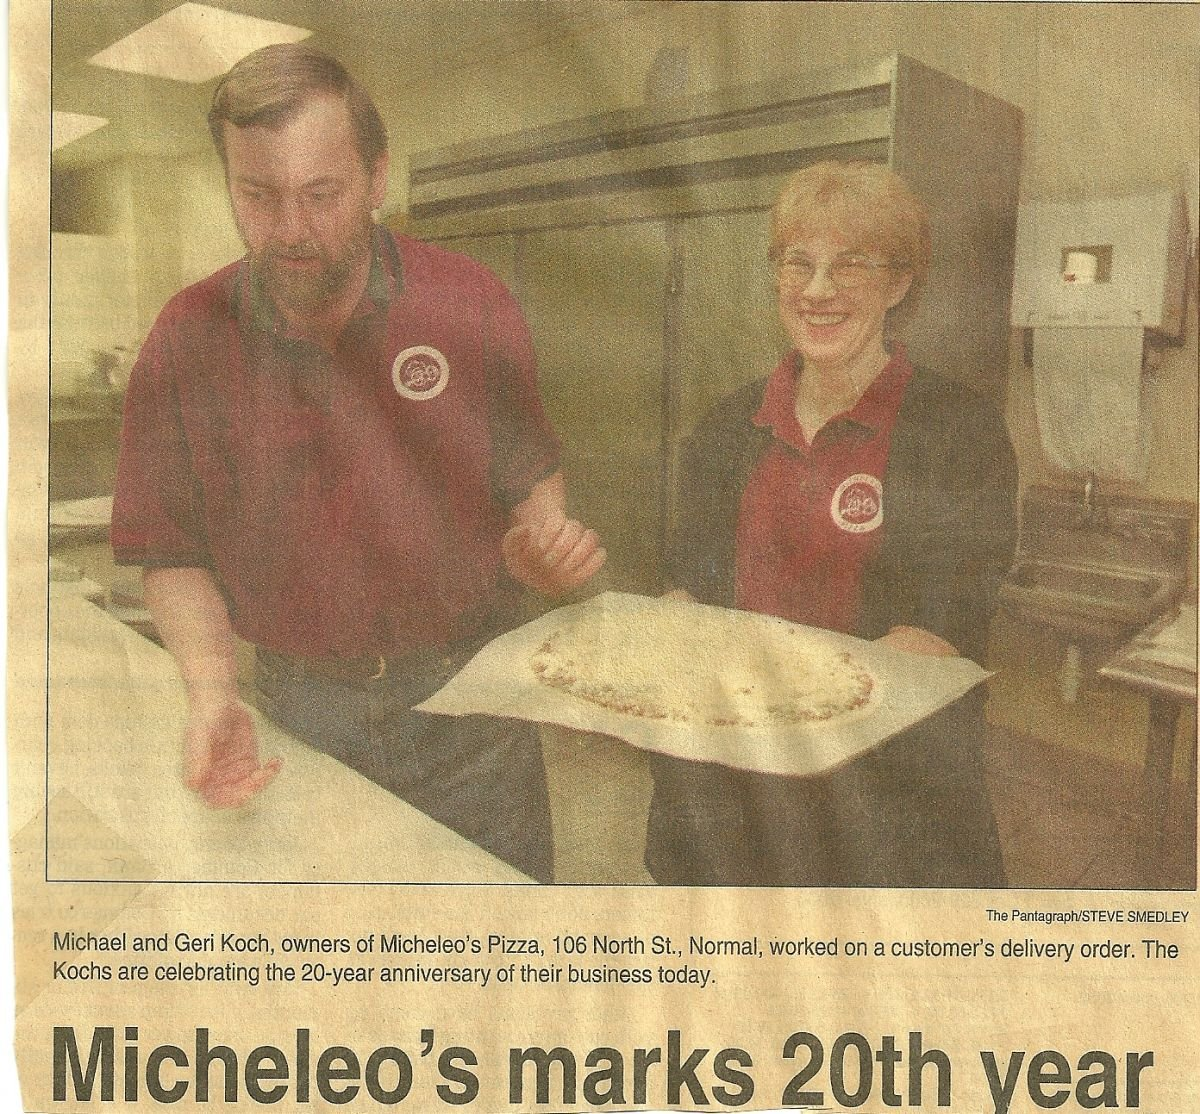 Mike & Geri Koch, owners of Micheleo's Pizza, working on a customer's delivery order.